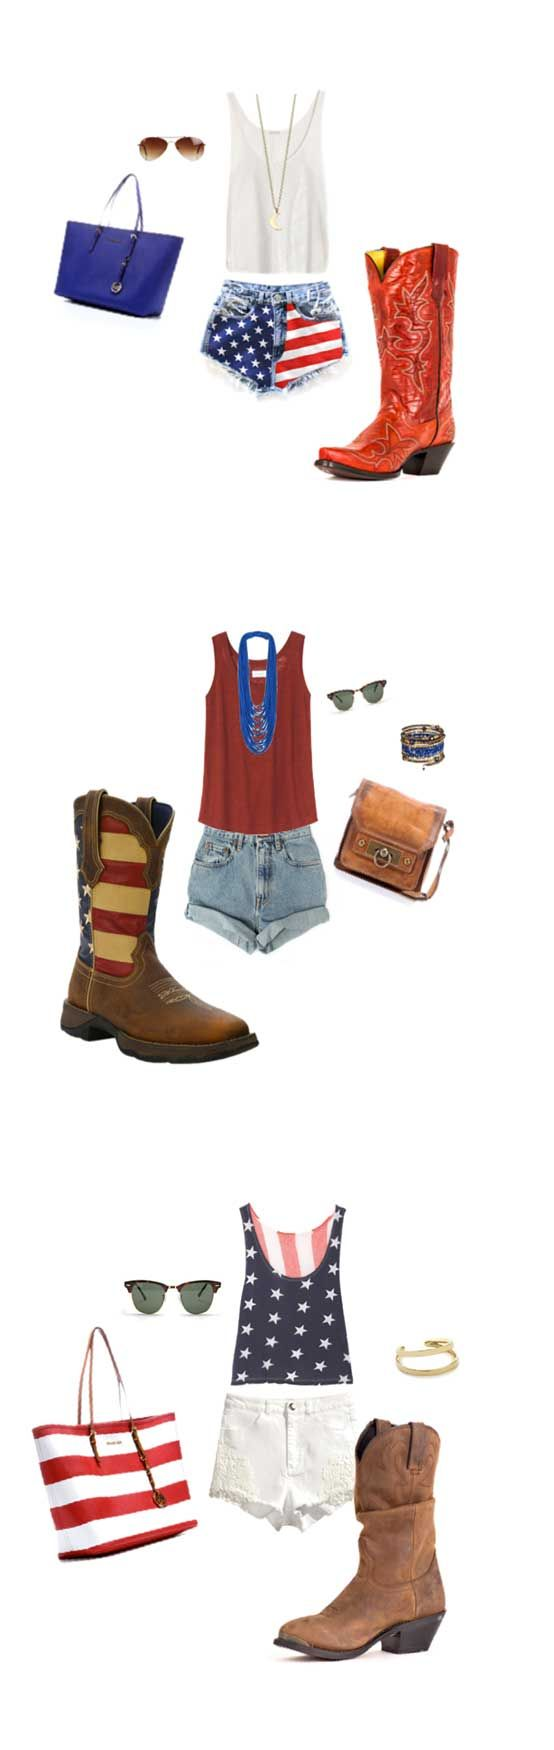 Show your American Pride today and everyday!   Country Outfitter